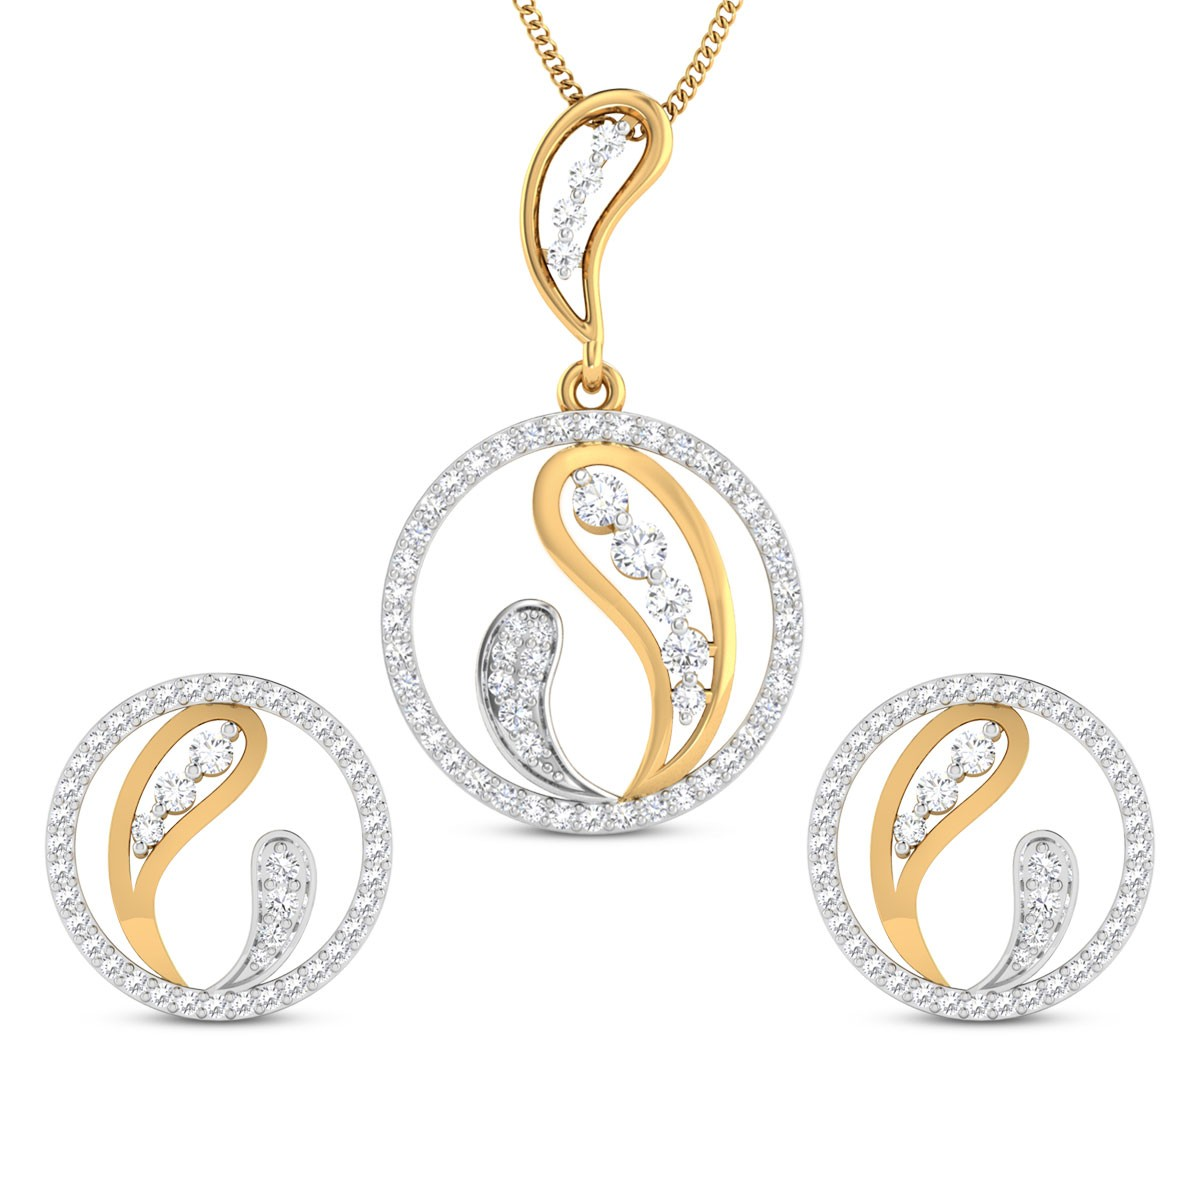 Mirai Circular Diamond Pendant Set